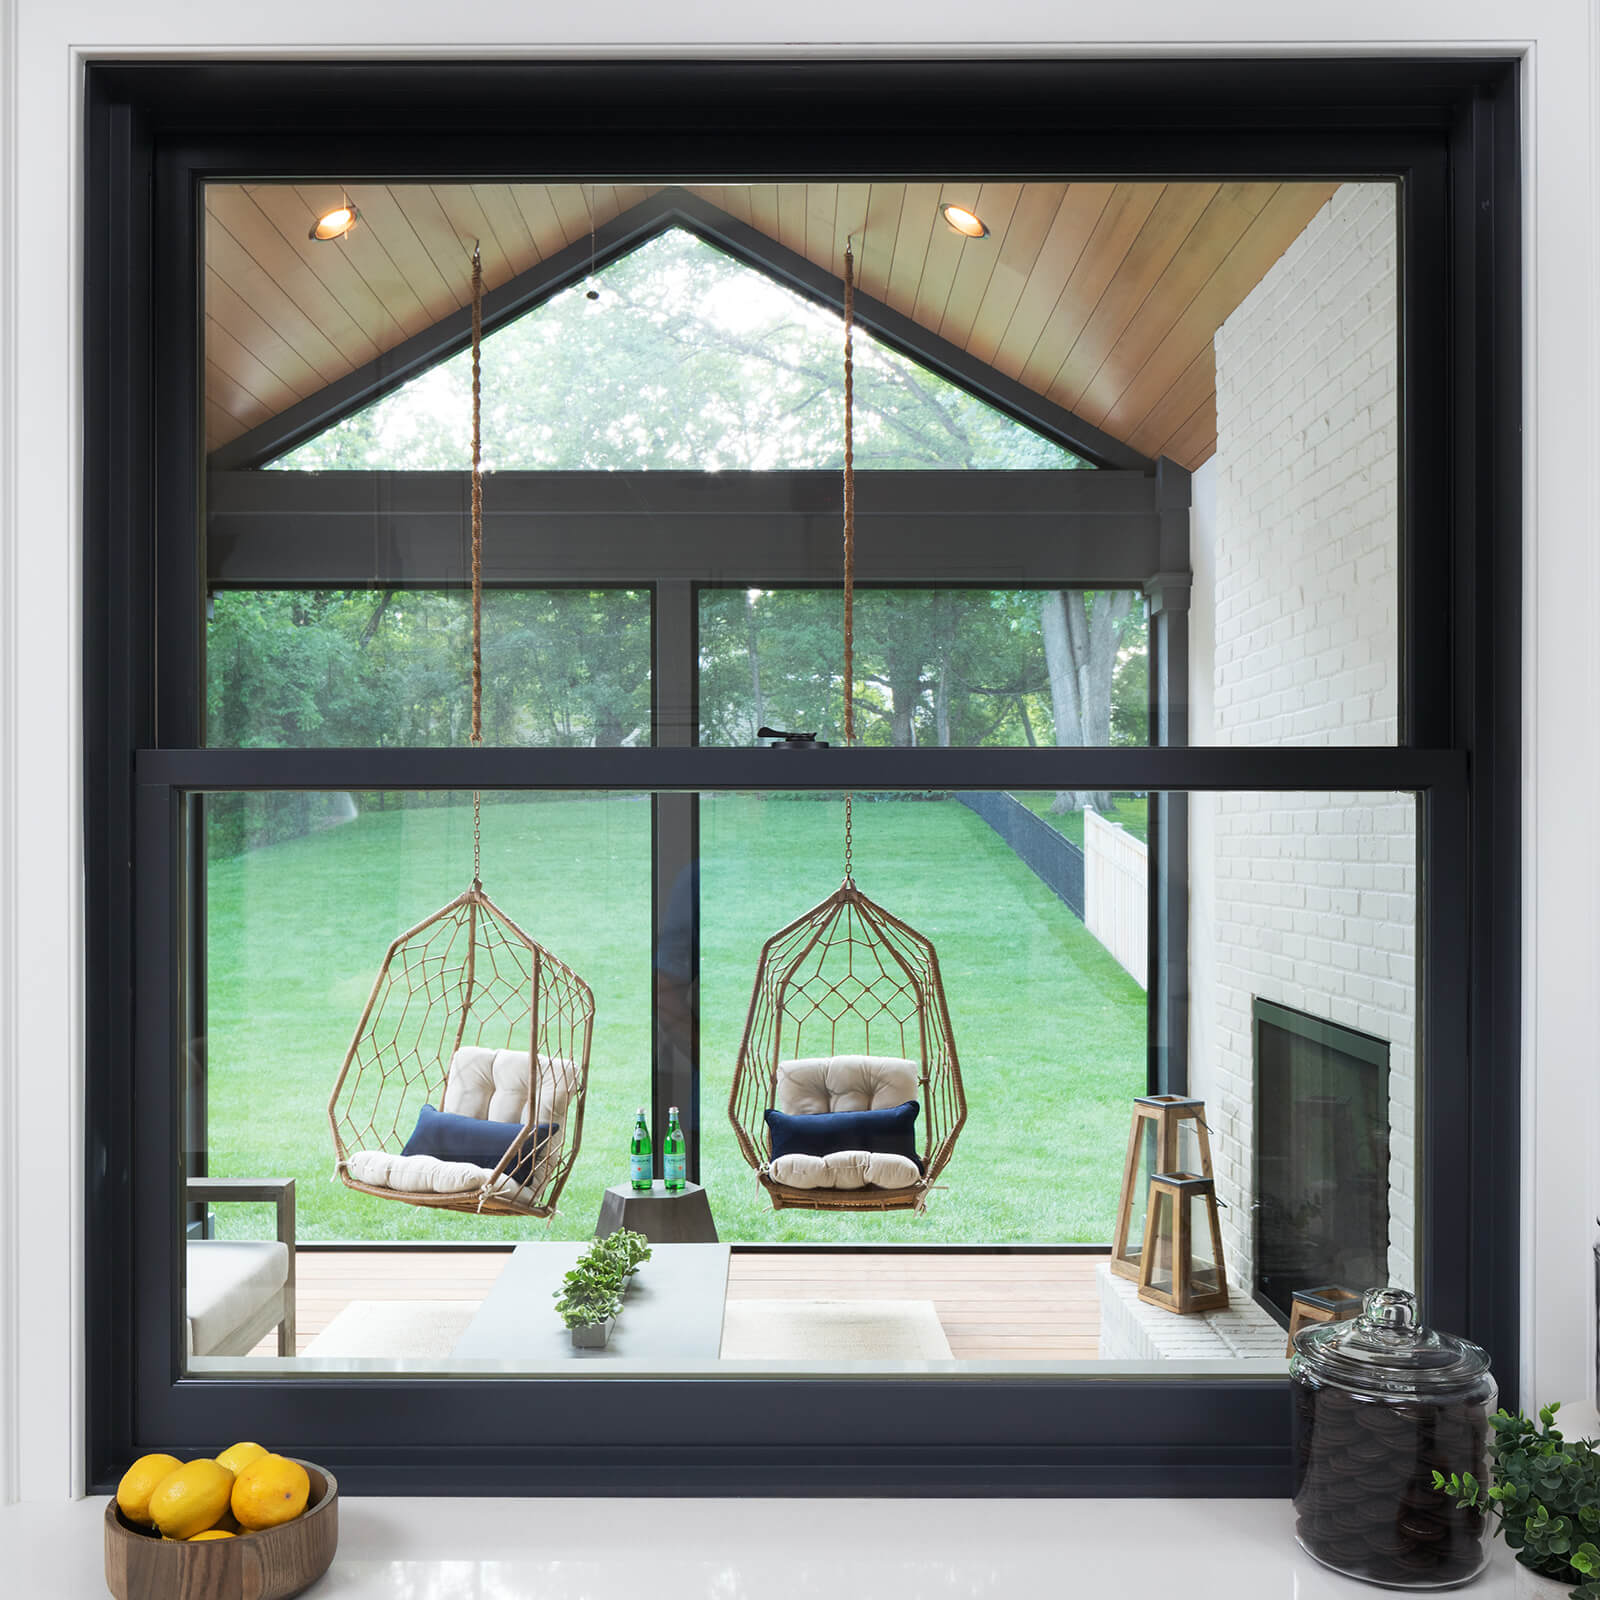 Interior view of outdoor patio through a Marvin Elevate Double Hung Window